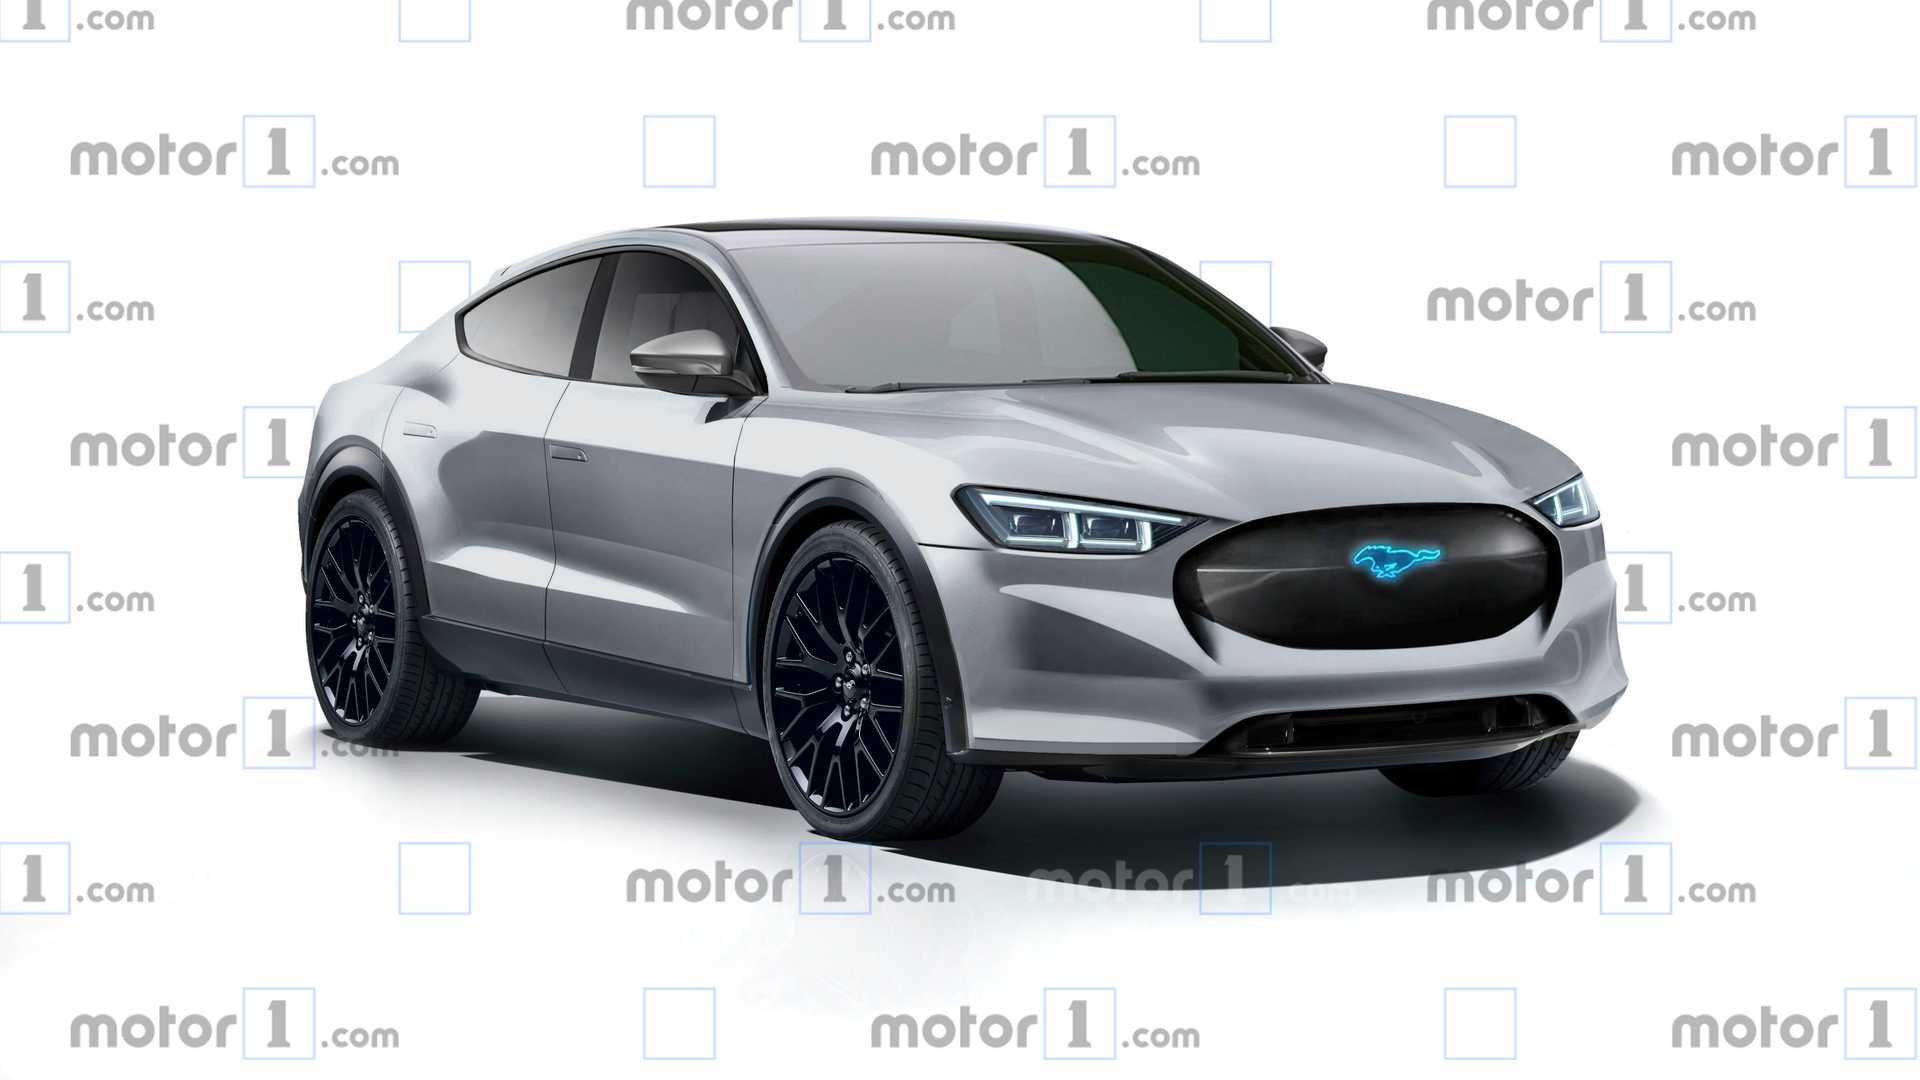 81 Gallery of Ford Ev 2020 Spy Shoot with Ford Ev 2020